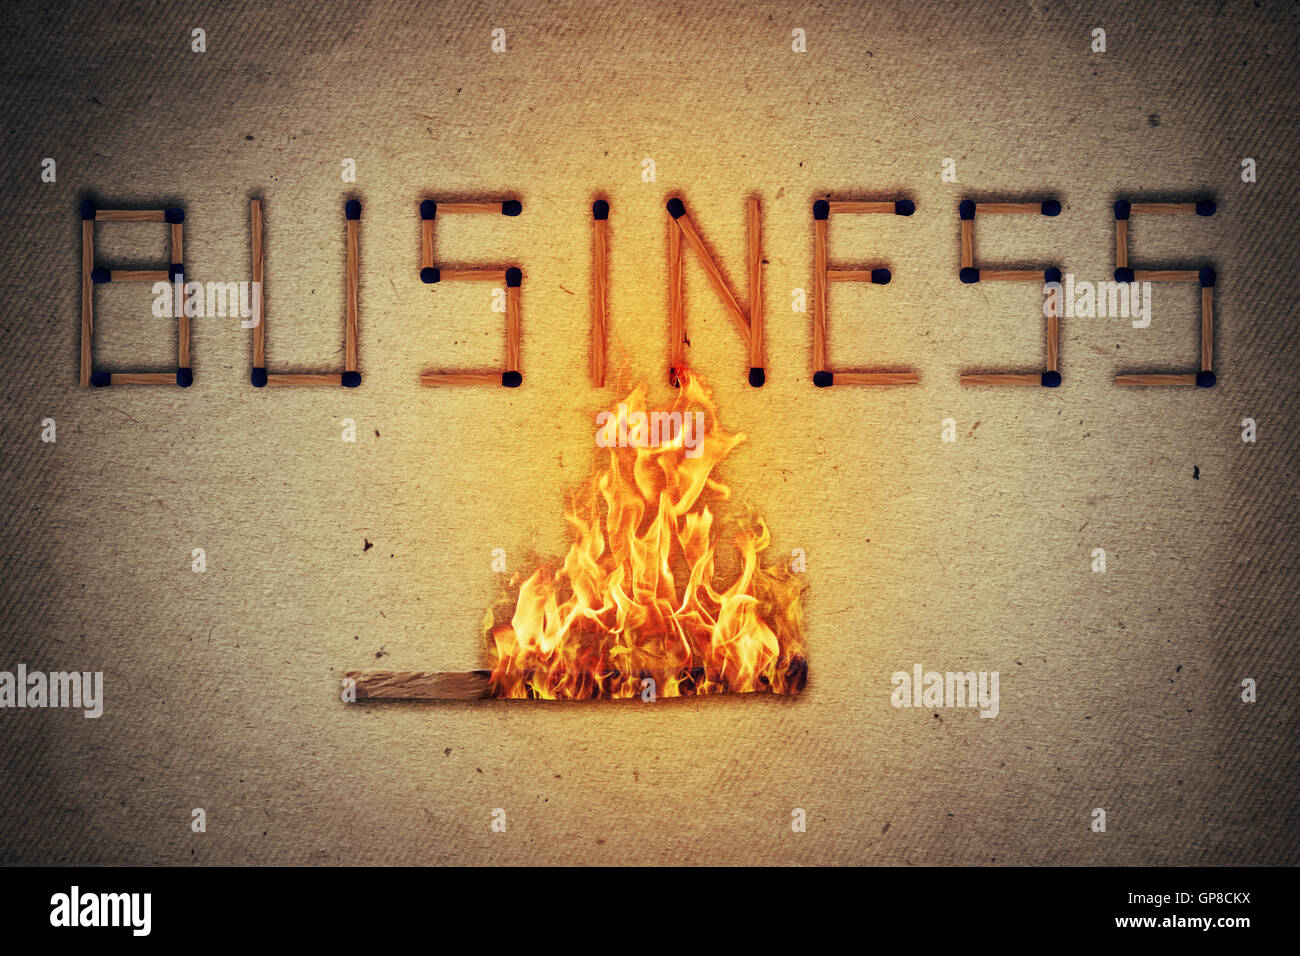 Burning match setting fire to its neighbors in arranged in shape of business word. Ignited match stick  as a symbol Stock Photo